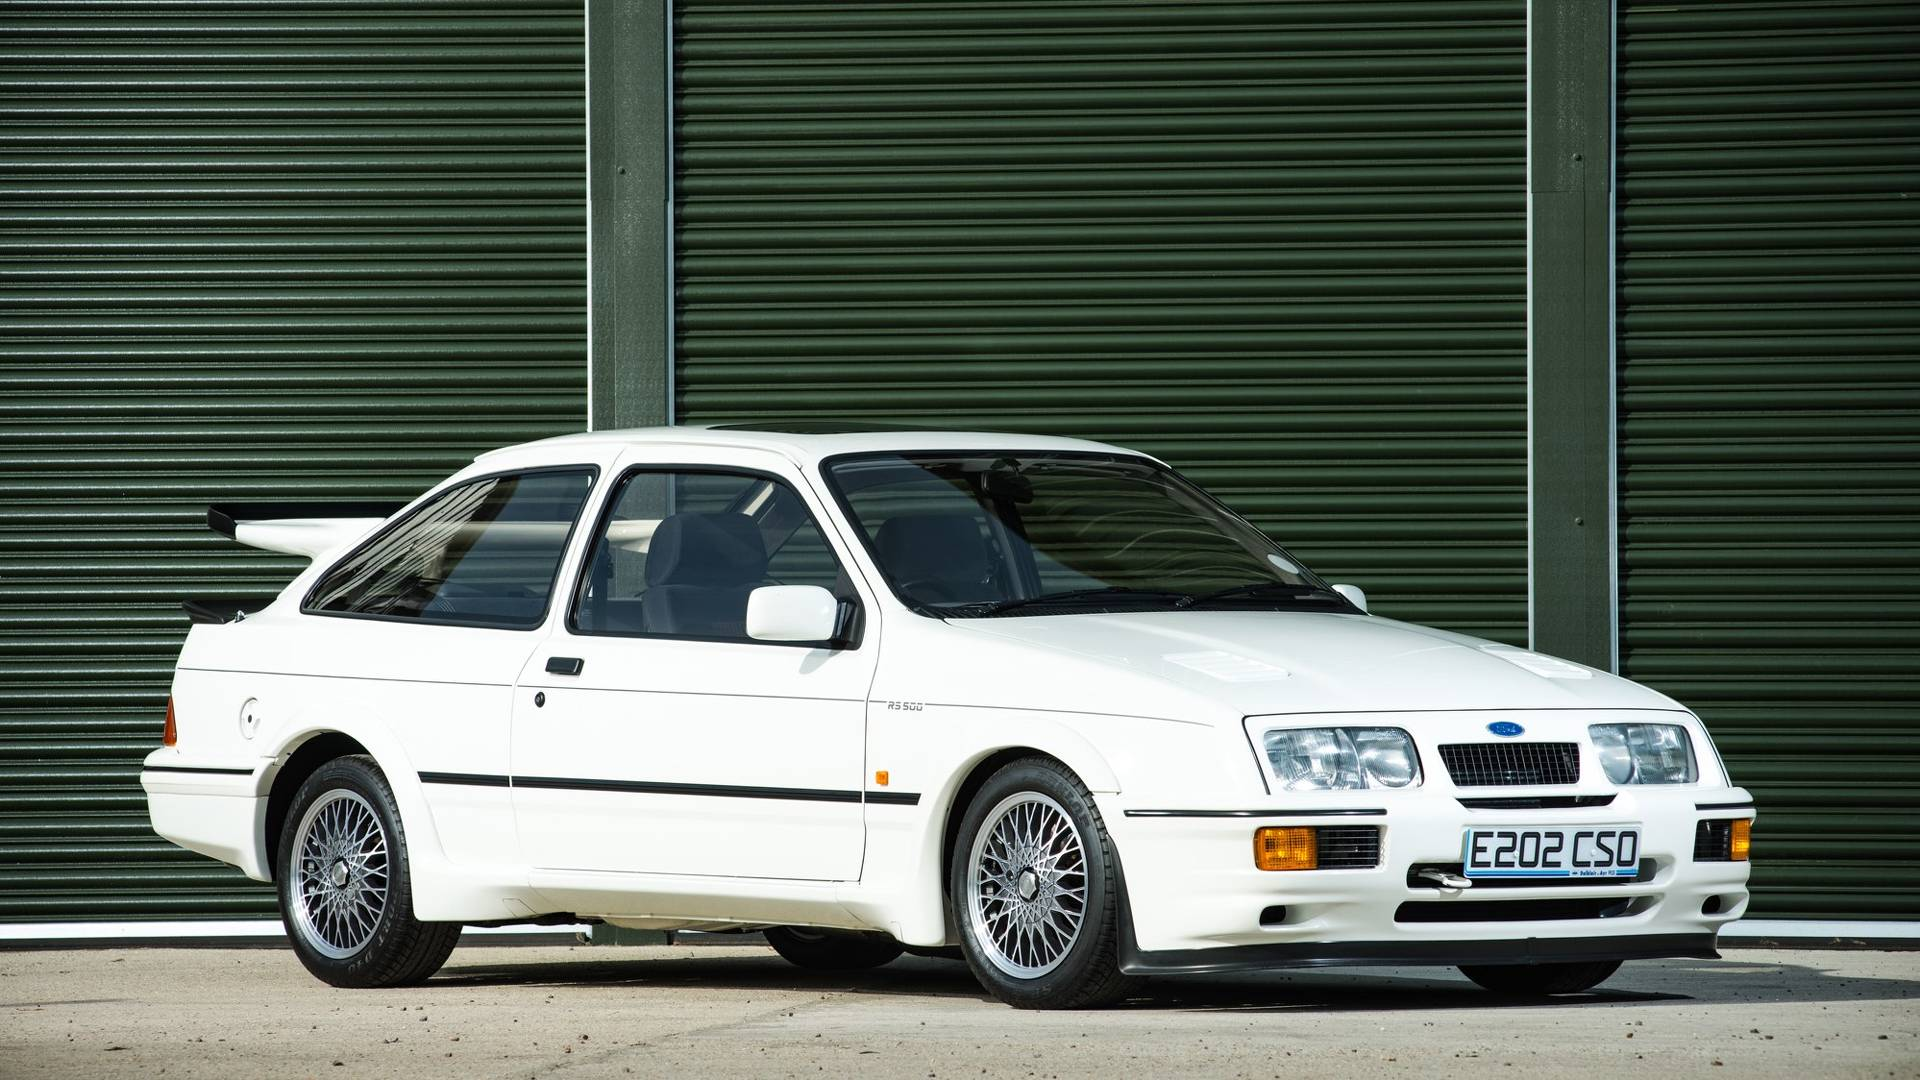 Ford And Ford Auction >> Spotless Ford Sierra Cosworth Set To Break Auction Record